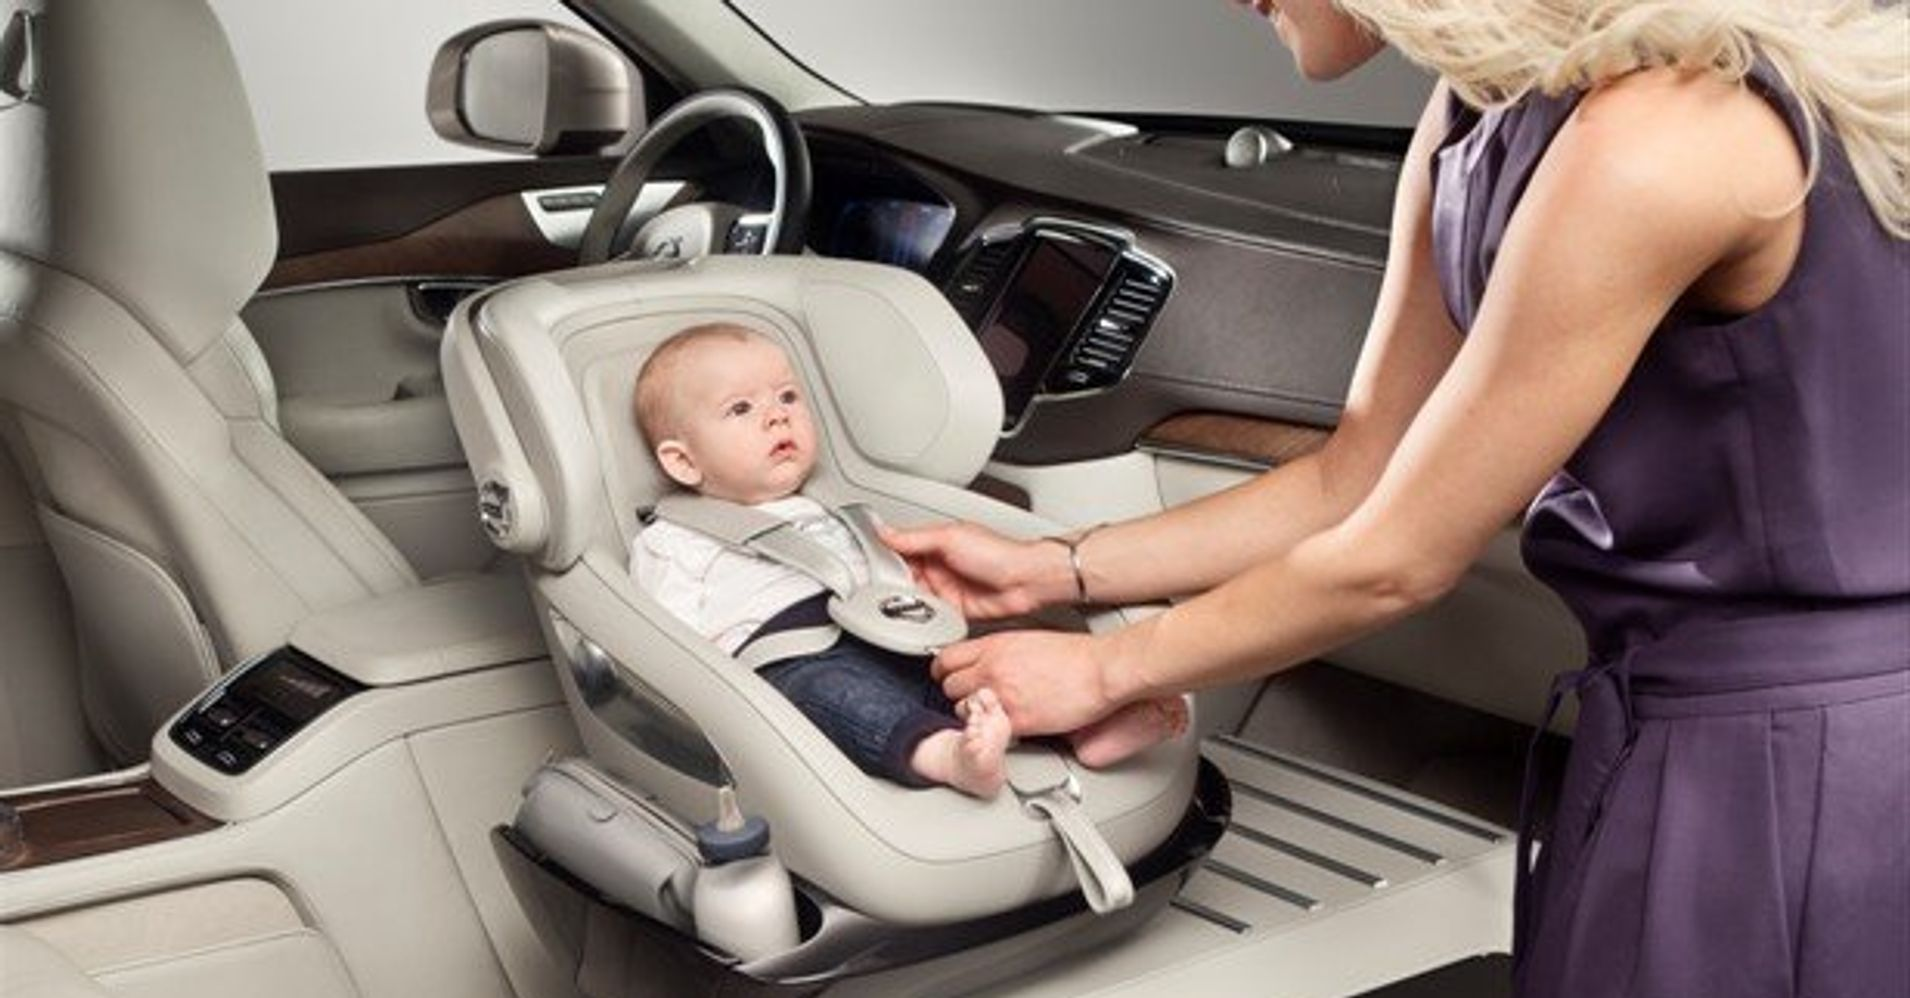 Volvo Introduces Controversial New Child Car Seat Concept | HuffPost